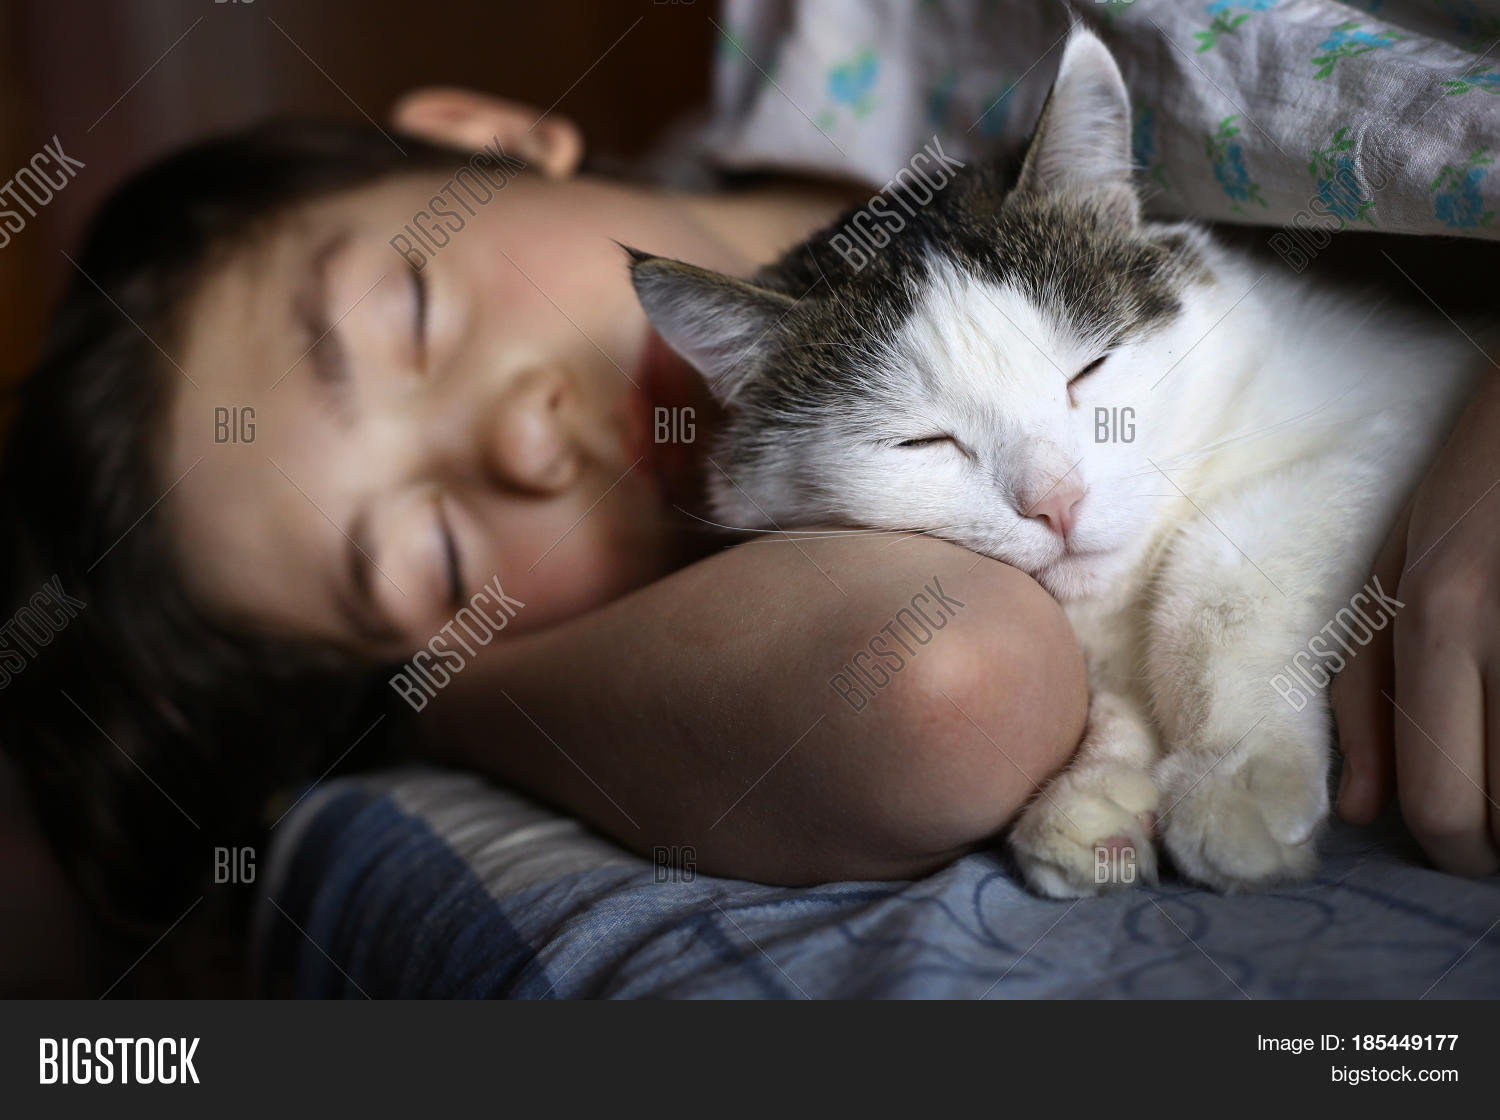 And Cat Sleeping Teen 85